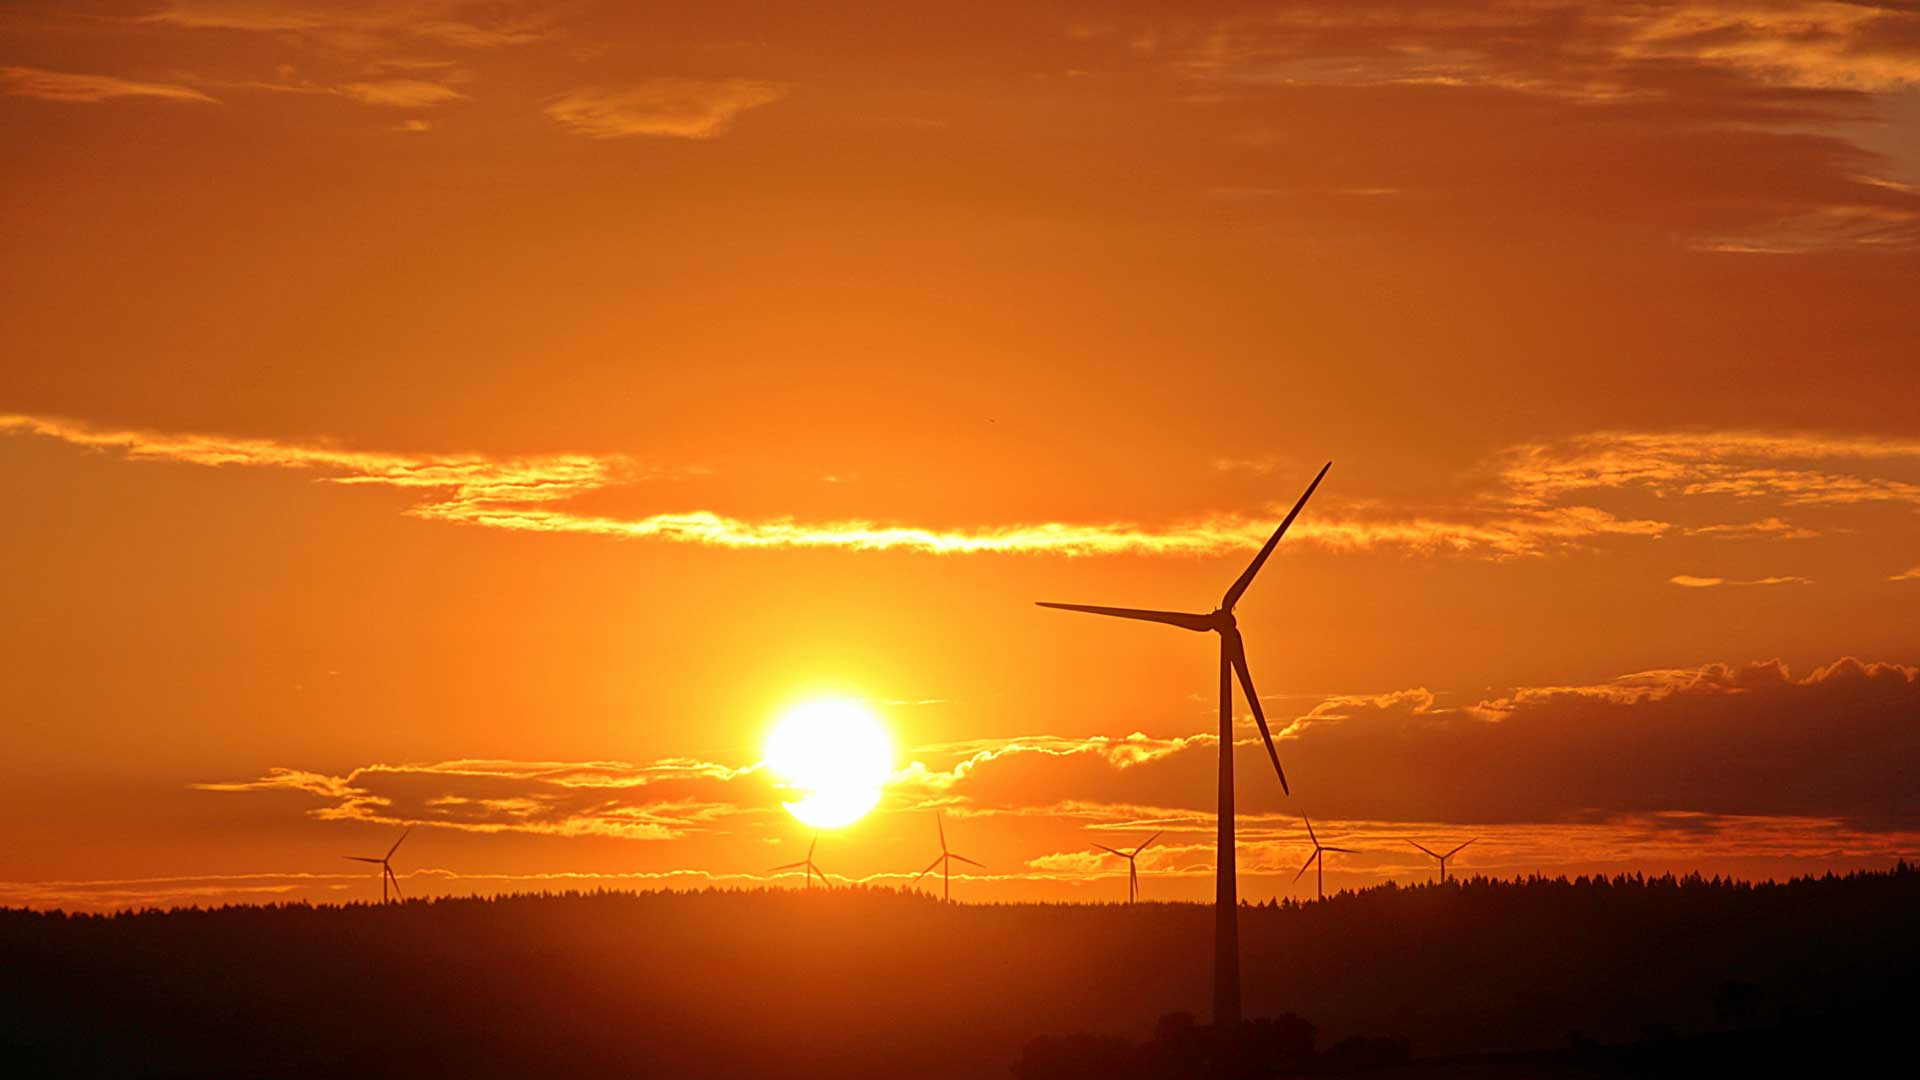 Sunrise and wind turbines silhouette